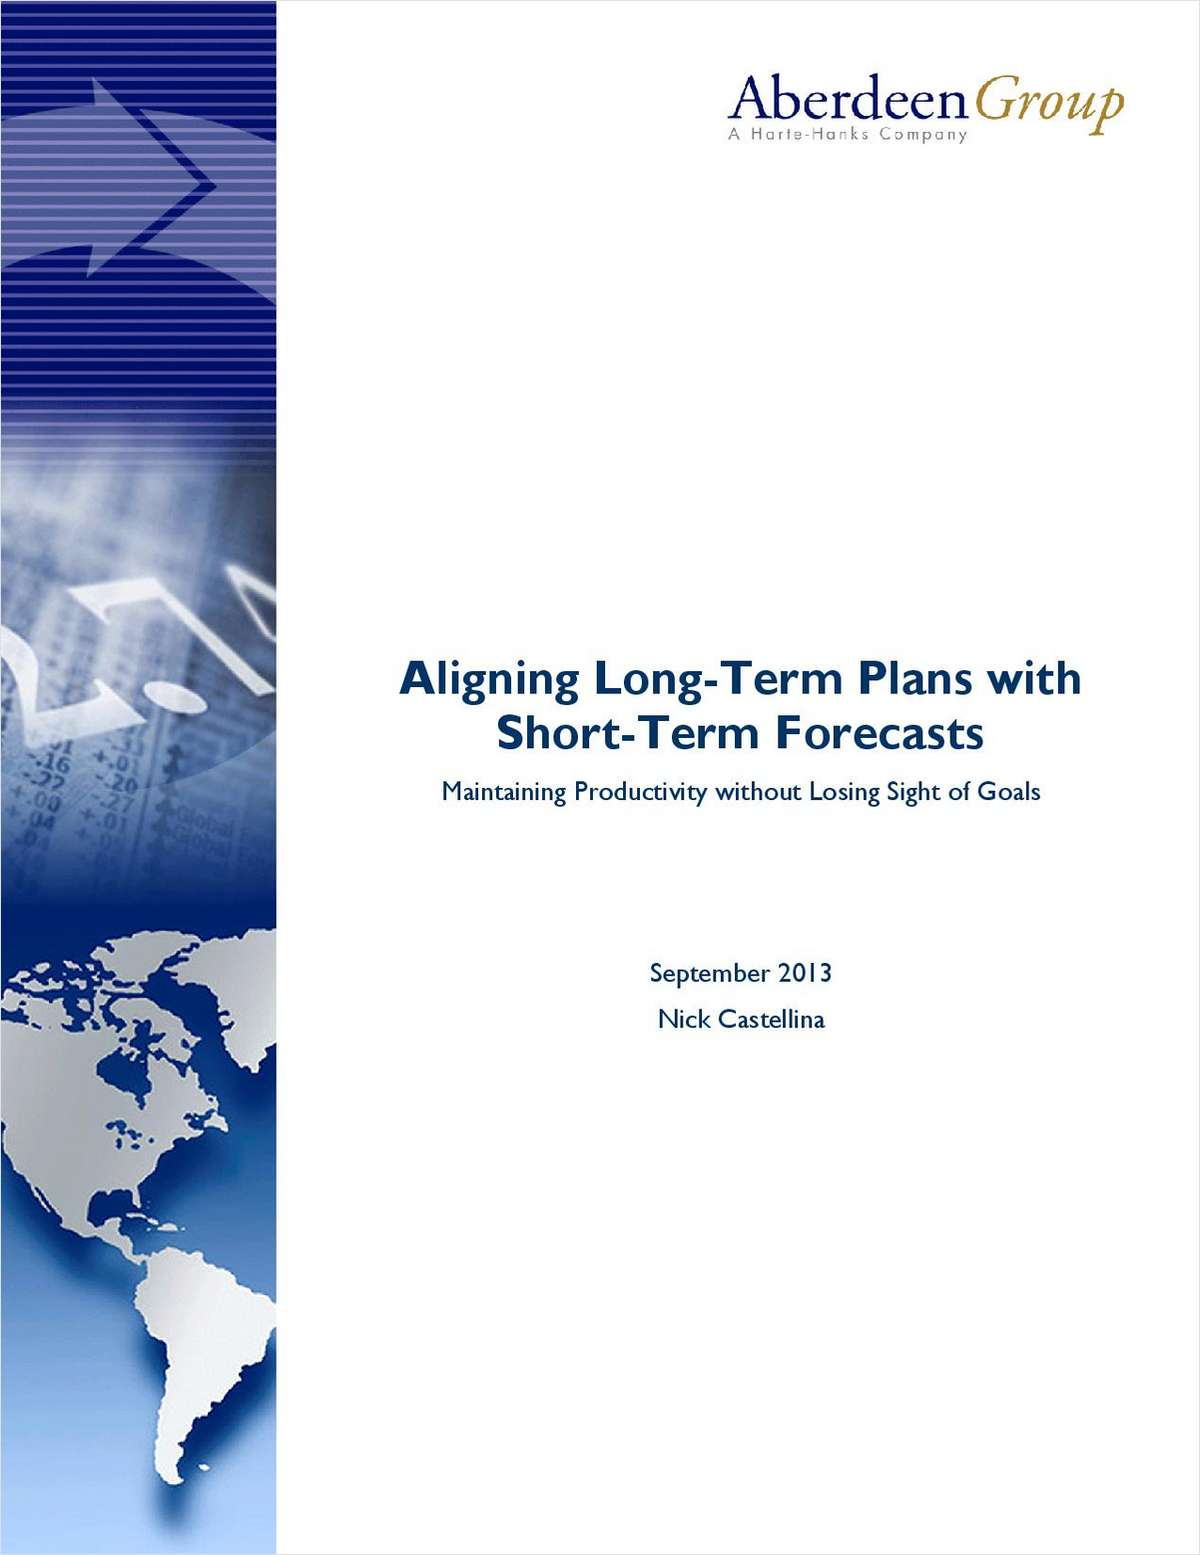 Aligning Long-term Plans with Short-term Forecasts: Maintaining Productivity without Losing Sight of Goals